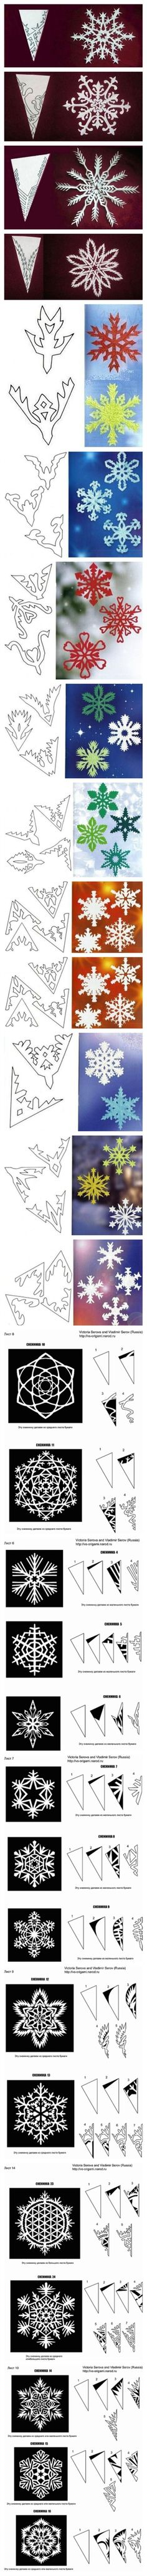 Snowflake designs for pipcleaners, use beads and glitter glue some paper cut outs and hot gule gun to make some amazing dropping tree flakes